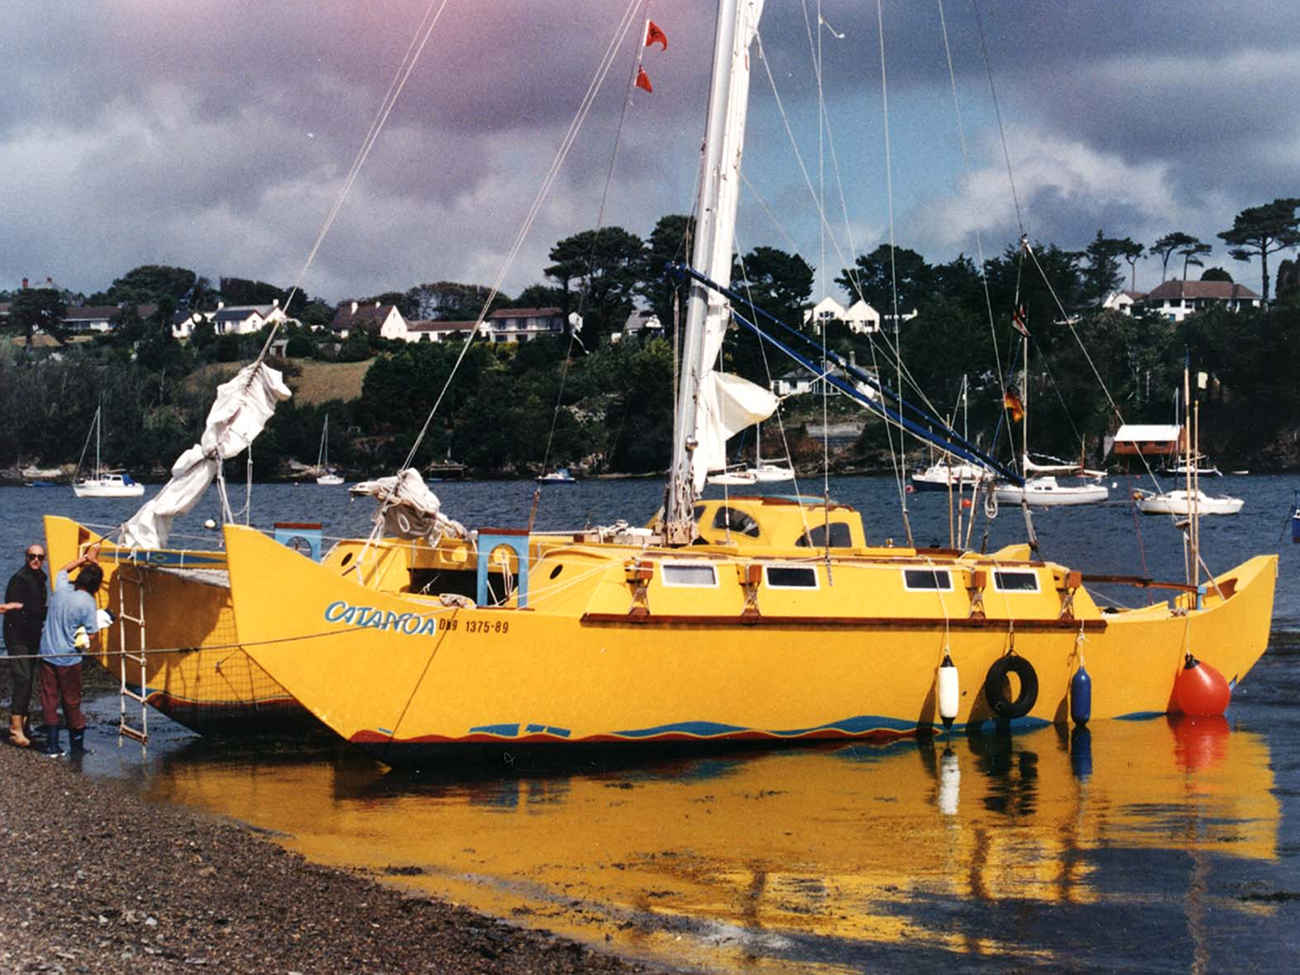 Yellow Pahi 42, beached in a harbour